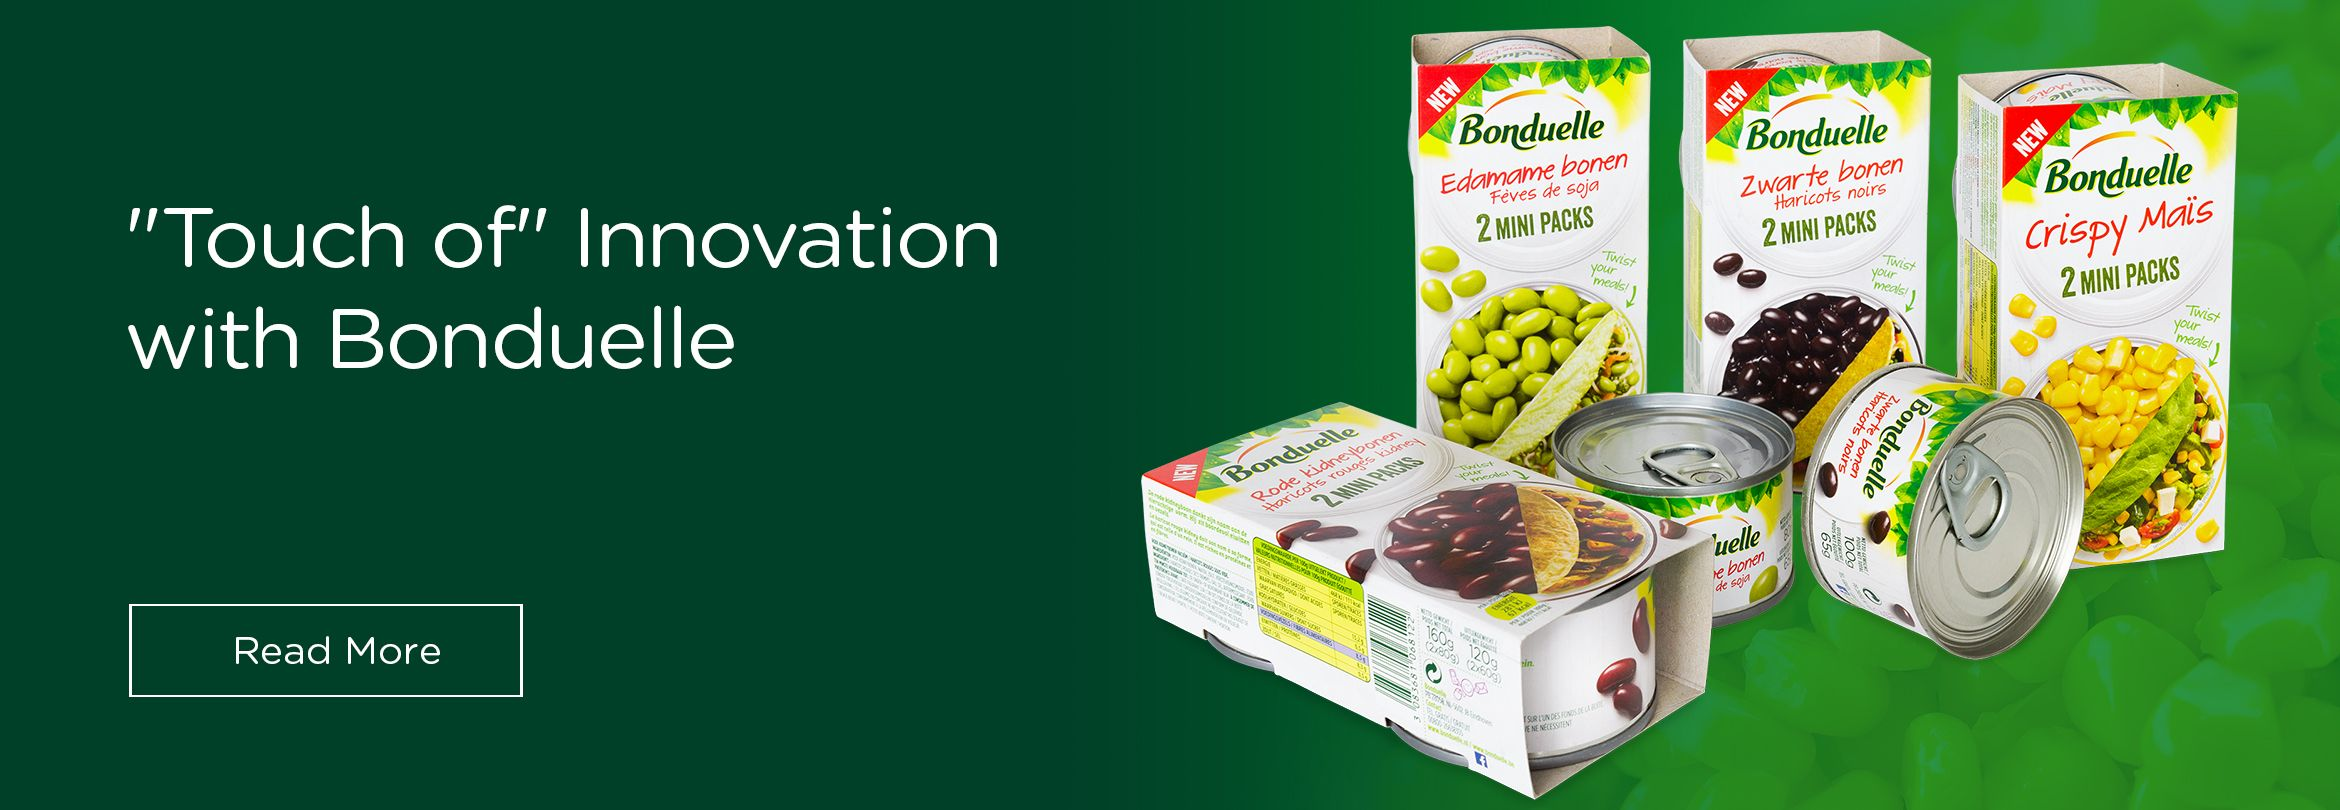 "Ardagh Group Engages in ""Touch of"" Innovation with Bonduelle"